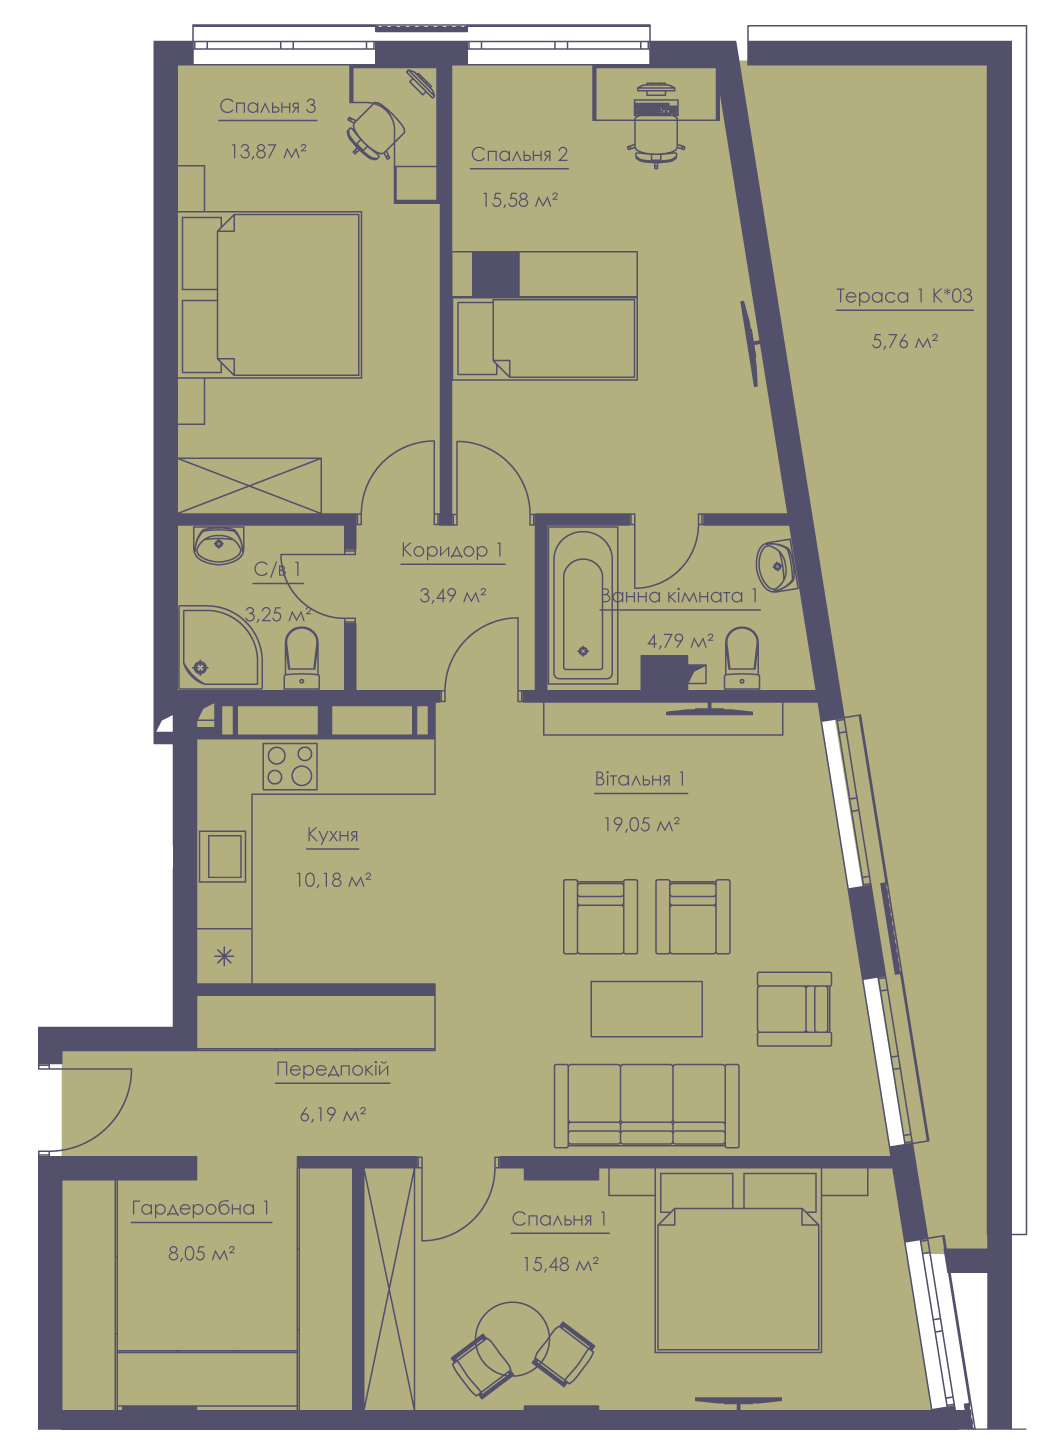 Apartment layout KV_111_4g_1_1_11-1